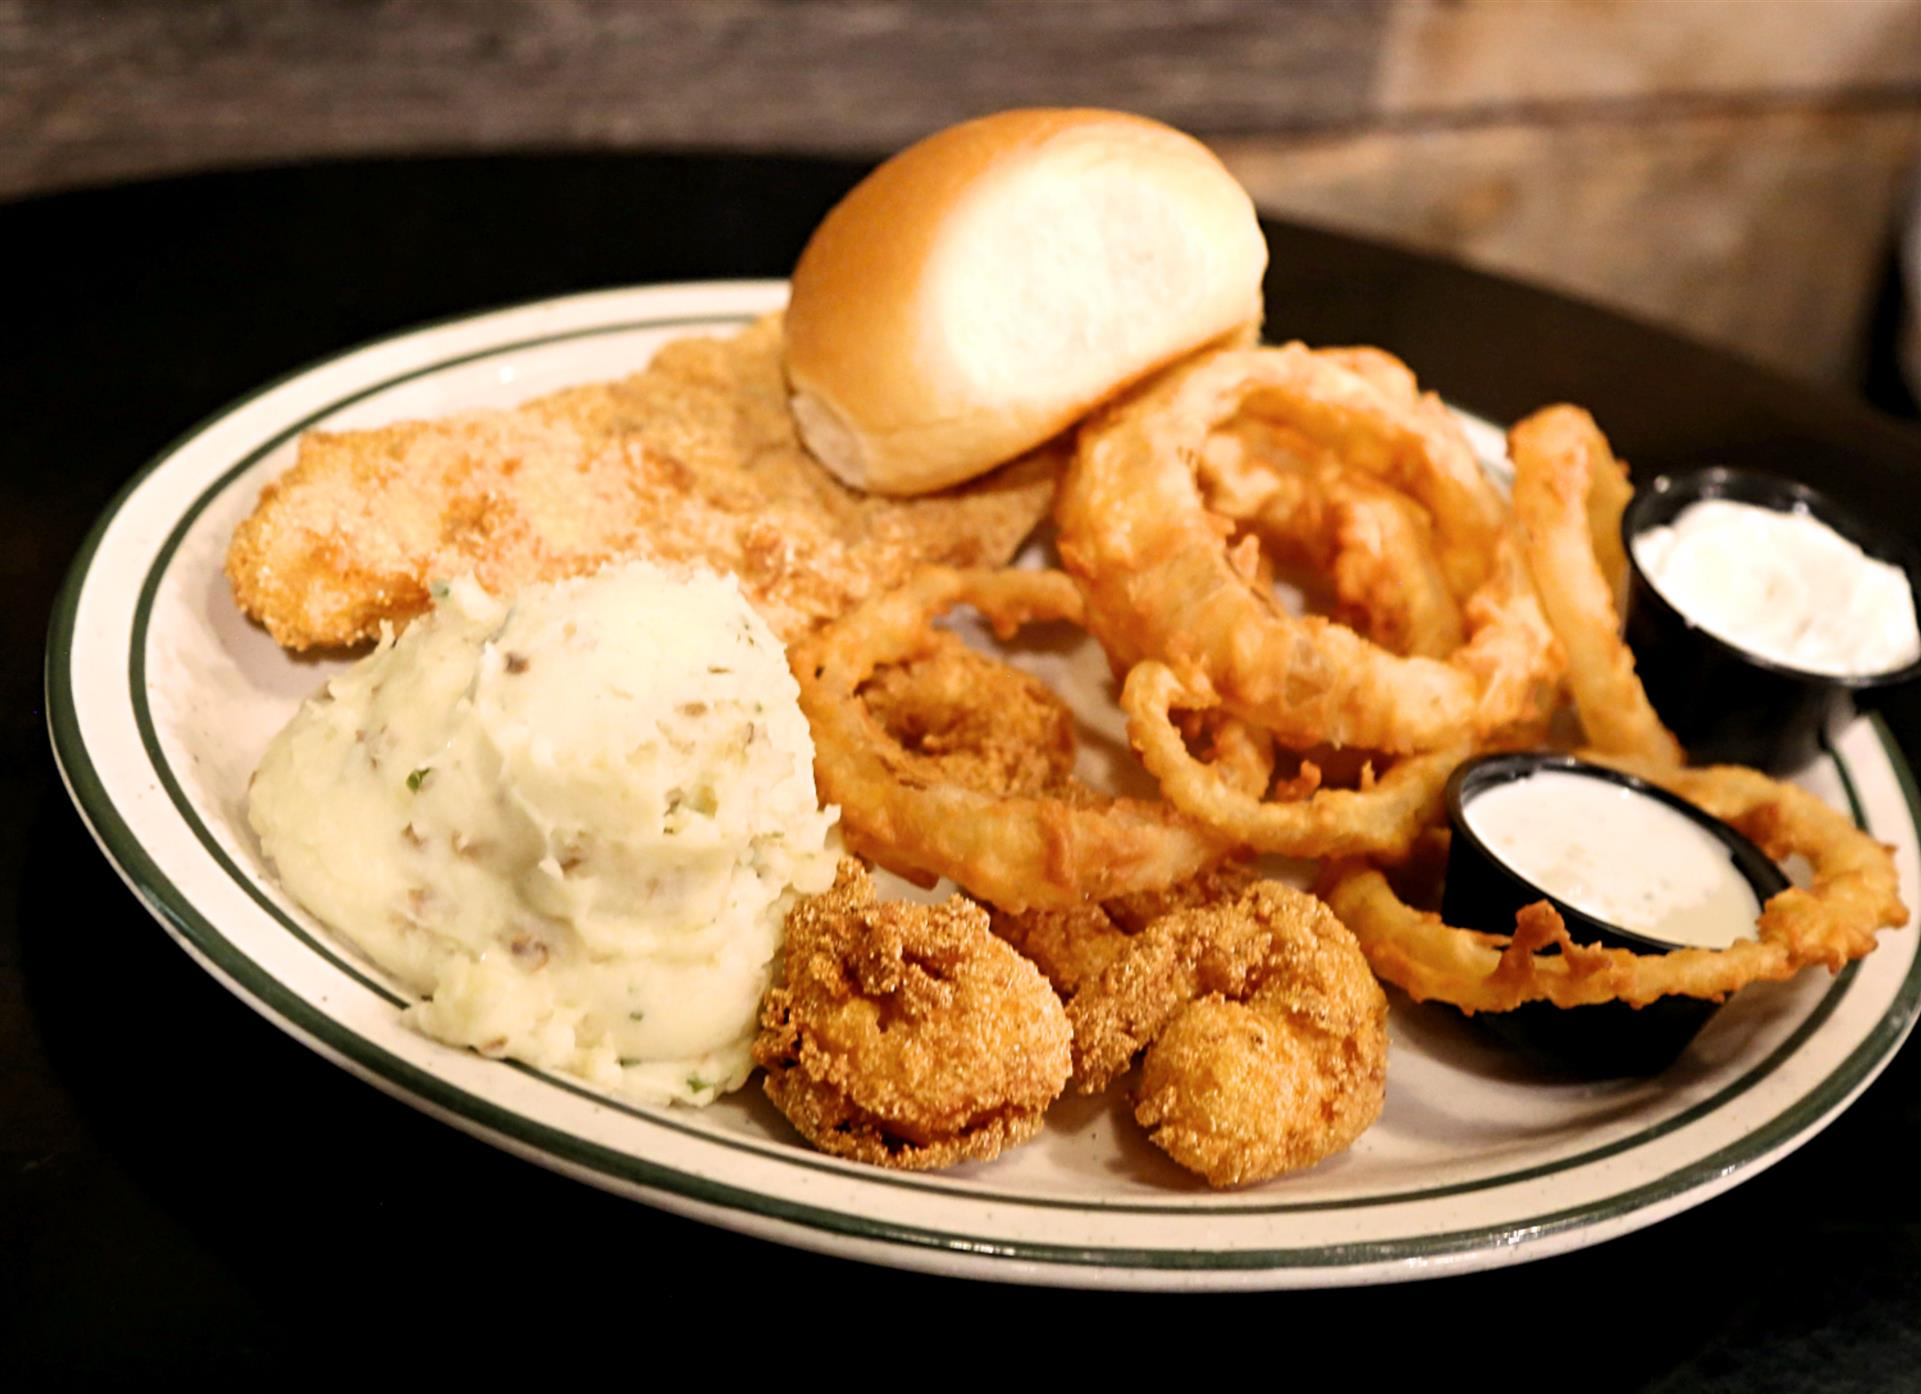 fried fish fillet with a side of mashed potatoes, fried shrimp, onion rings and a roll